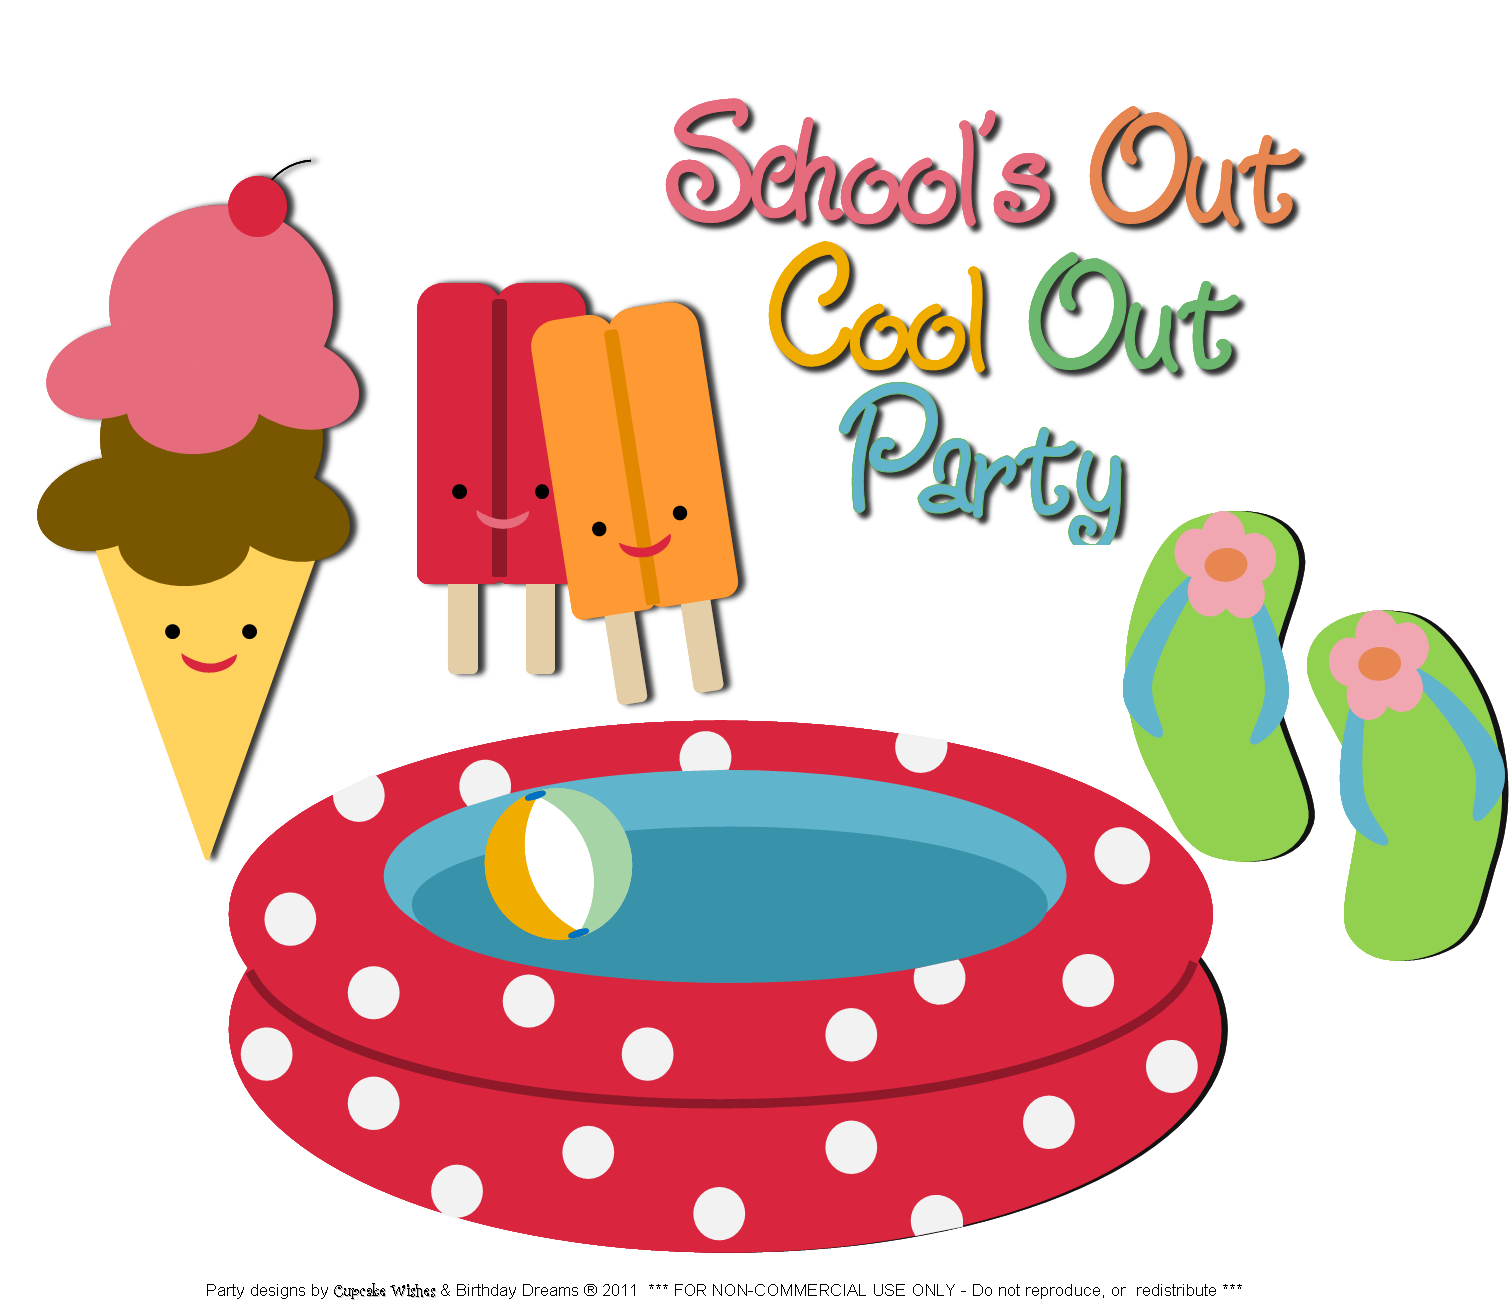 School images free clipart banner black and white Schools Out Party Clipart banner black and white